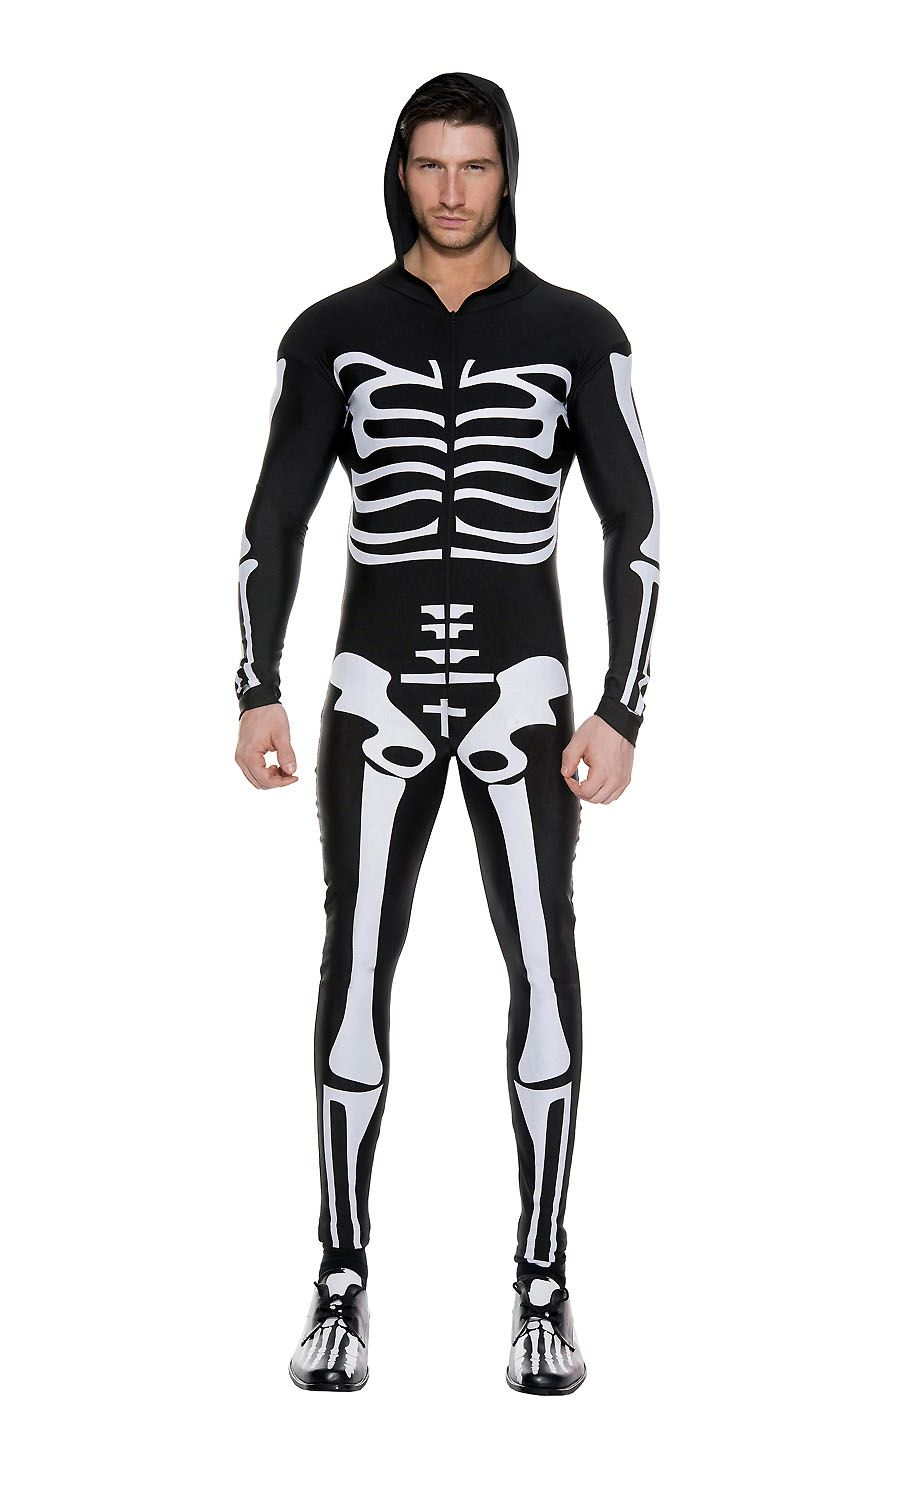 ... Adult Skeleton Bodysuit Men Costume. Click here to view Large Image